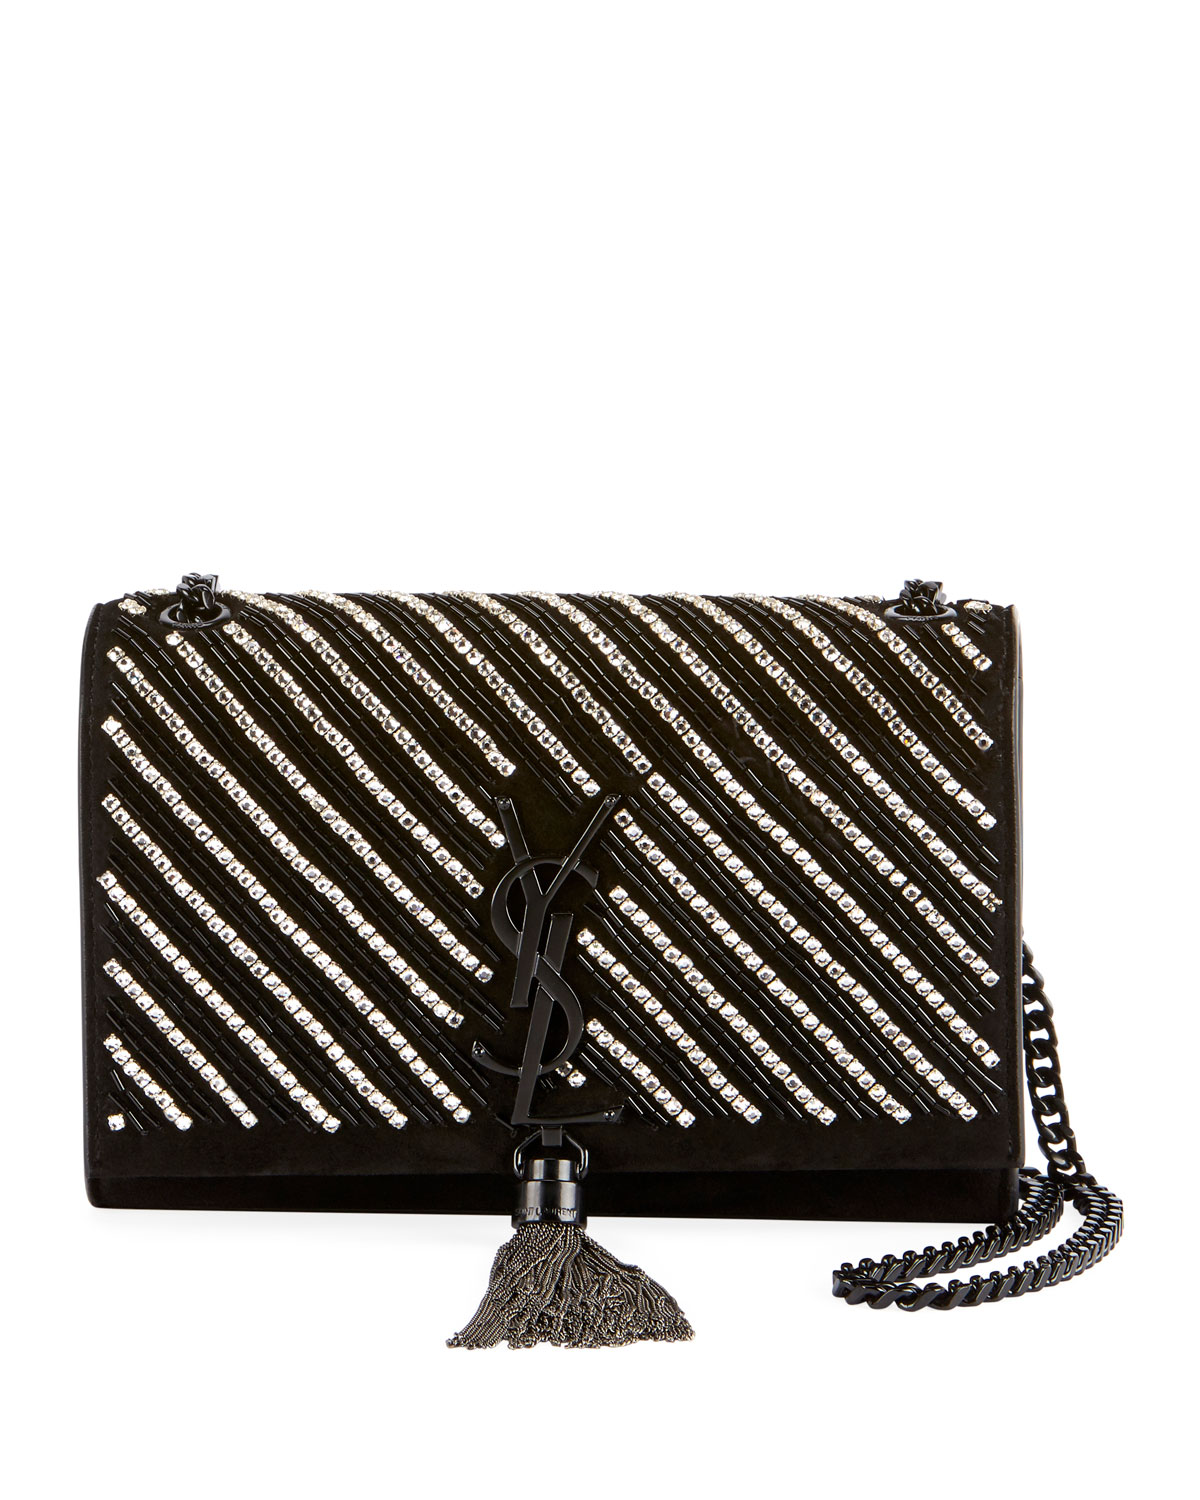 5fe28d94cc56 Saint Laurent Kate Small Ysl Monogram Tassel Crossbody Bag With Crystal  Stripes In Black Metallic